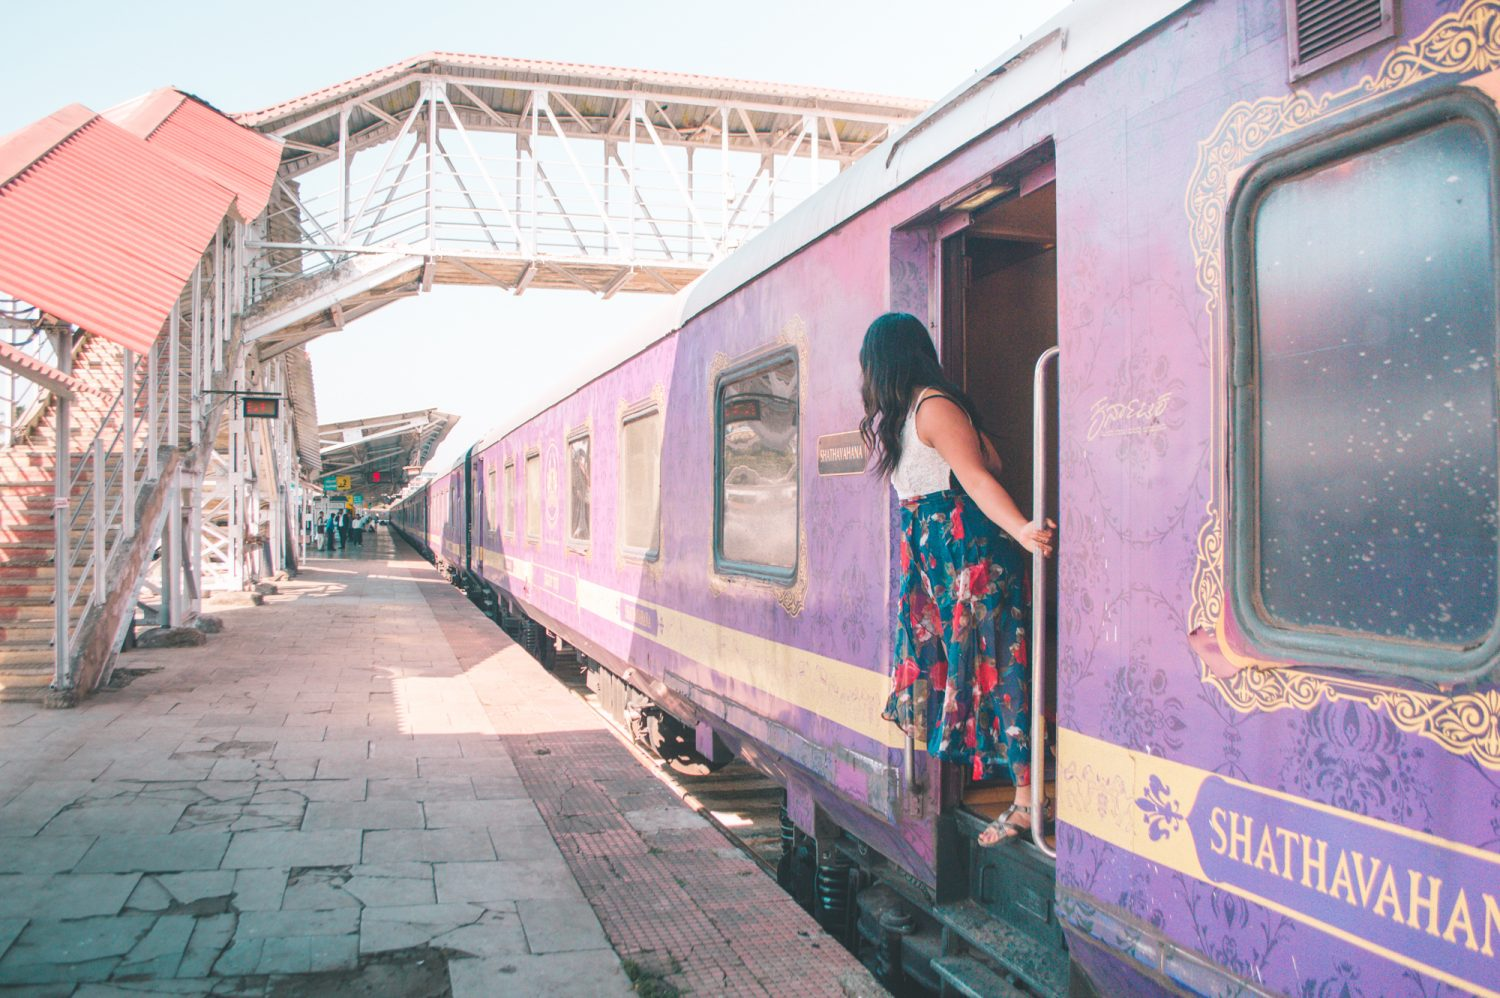 A full review of the Golden Chariot luxury train experience across Southern India!